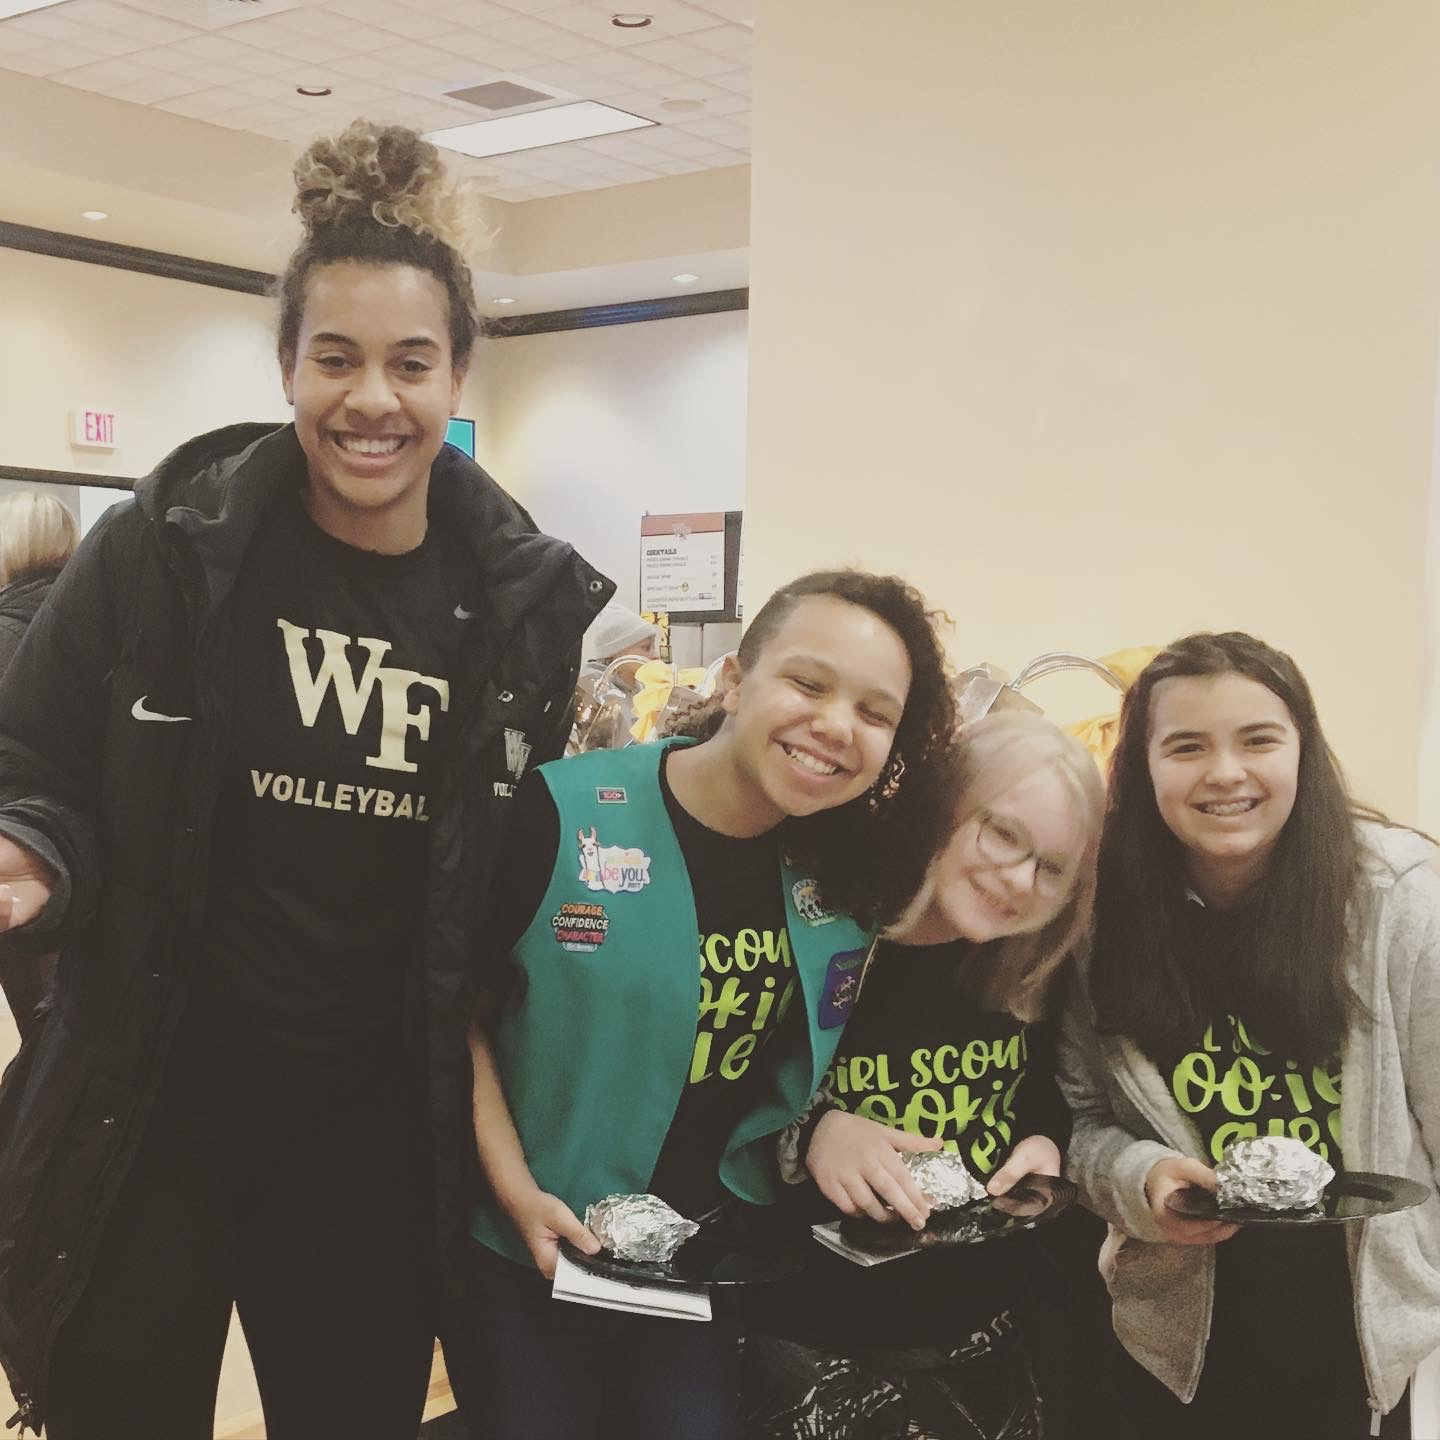 3 young girl scouts smiling with burritos accompanied by a Wake athlete